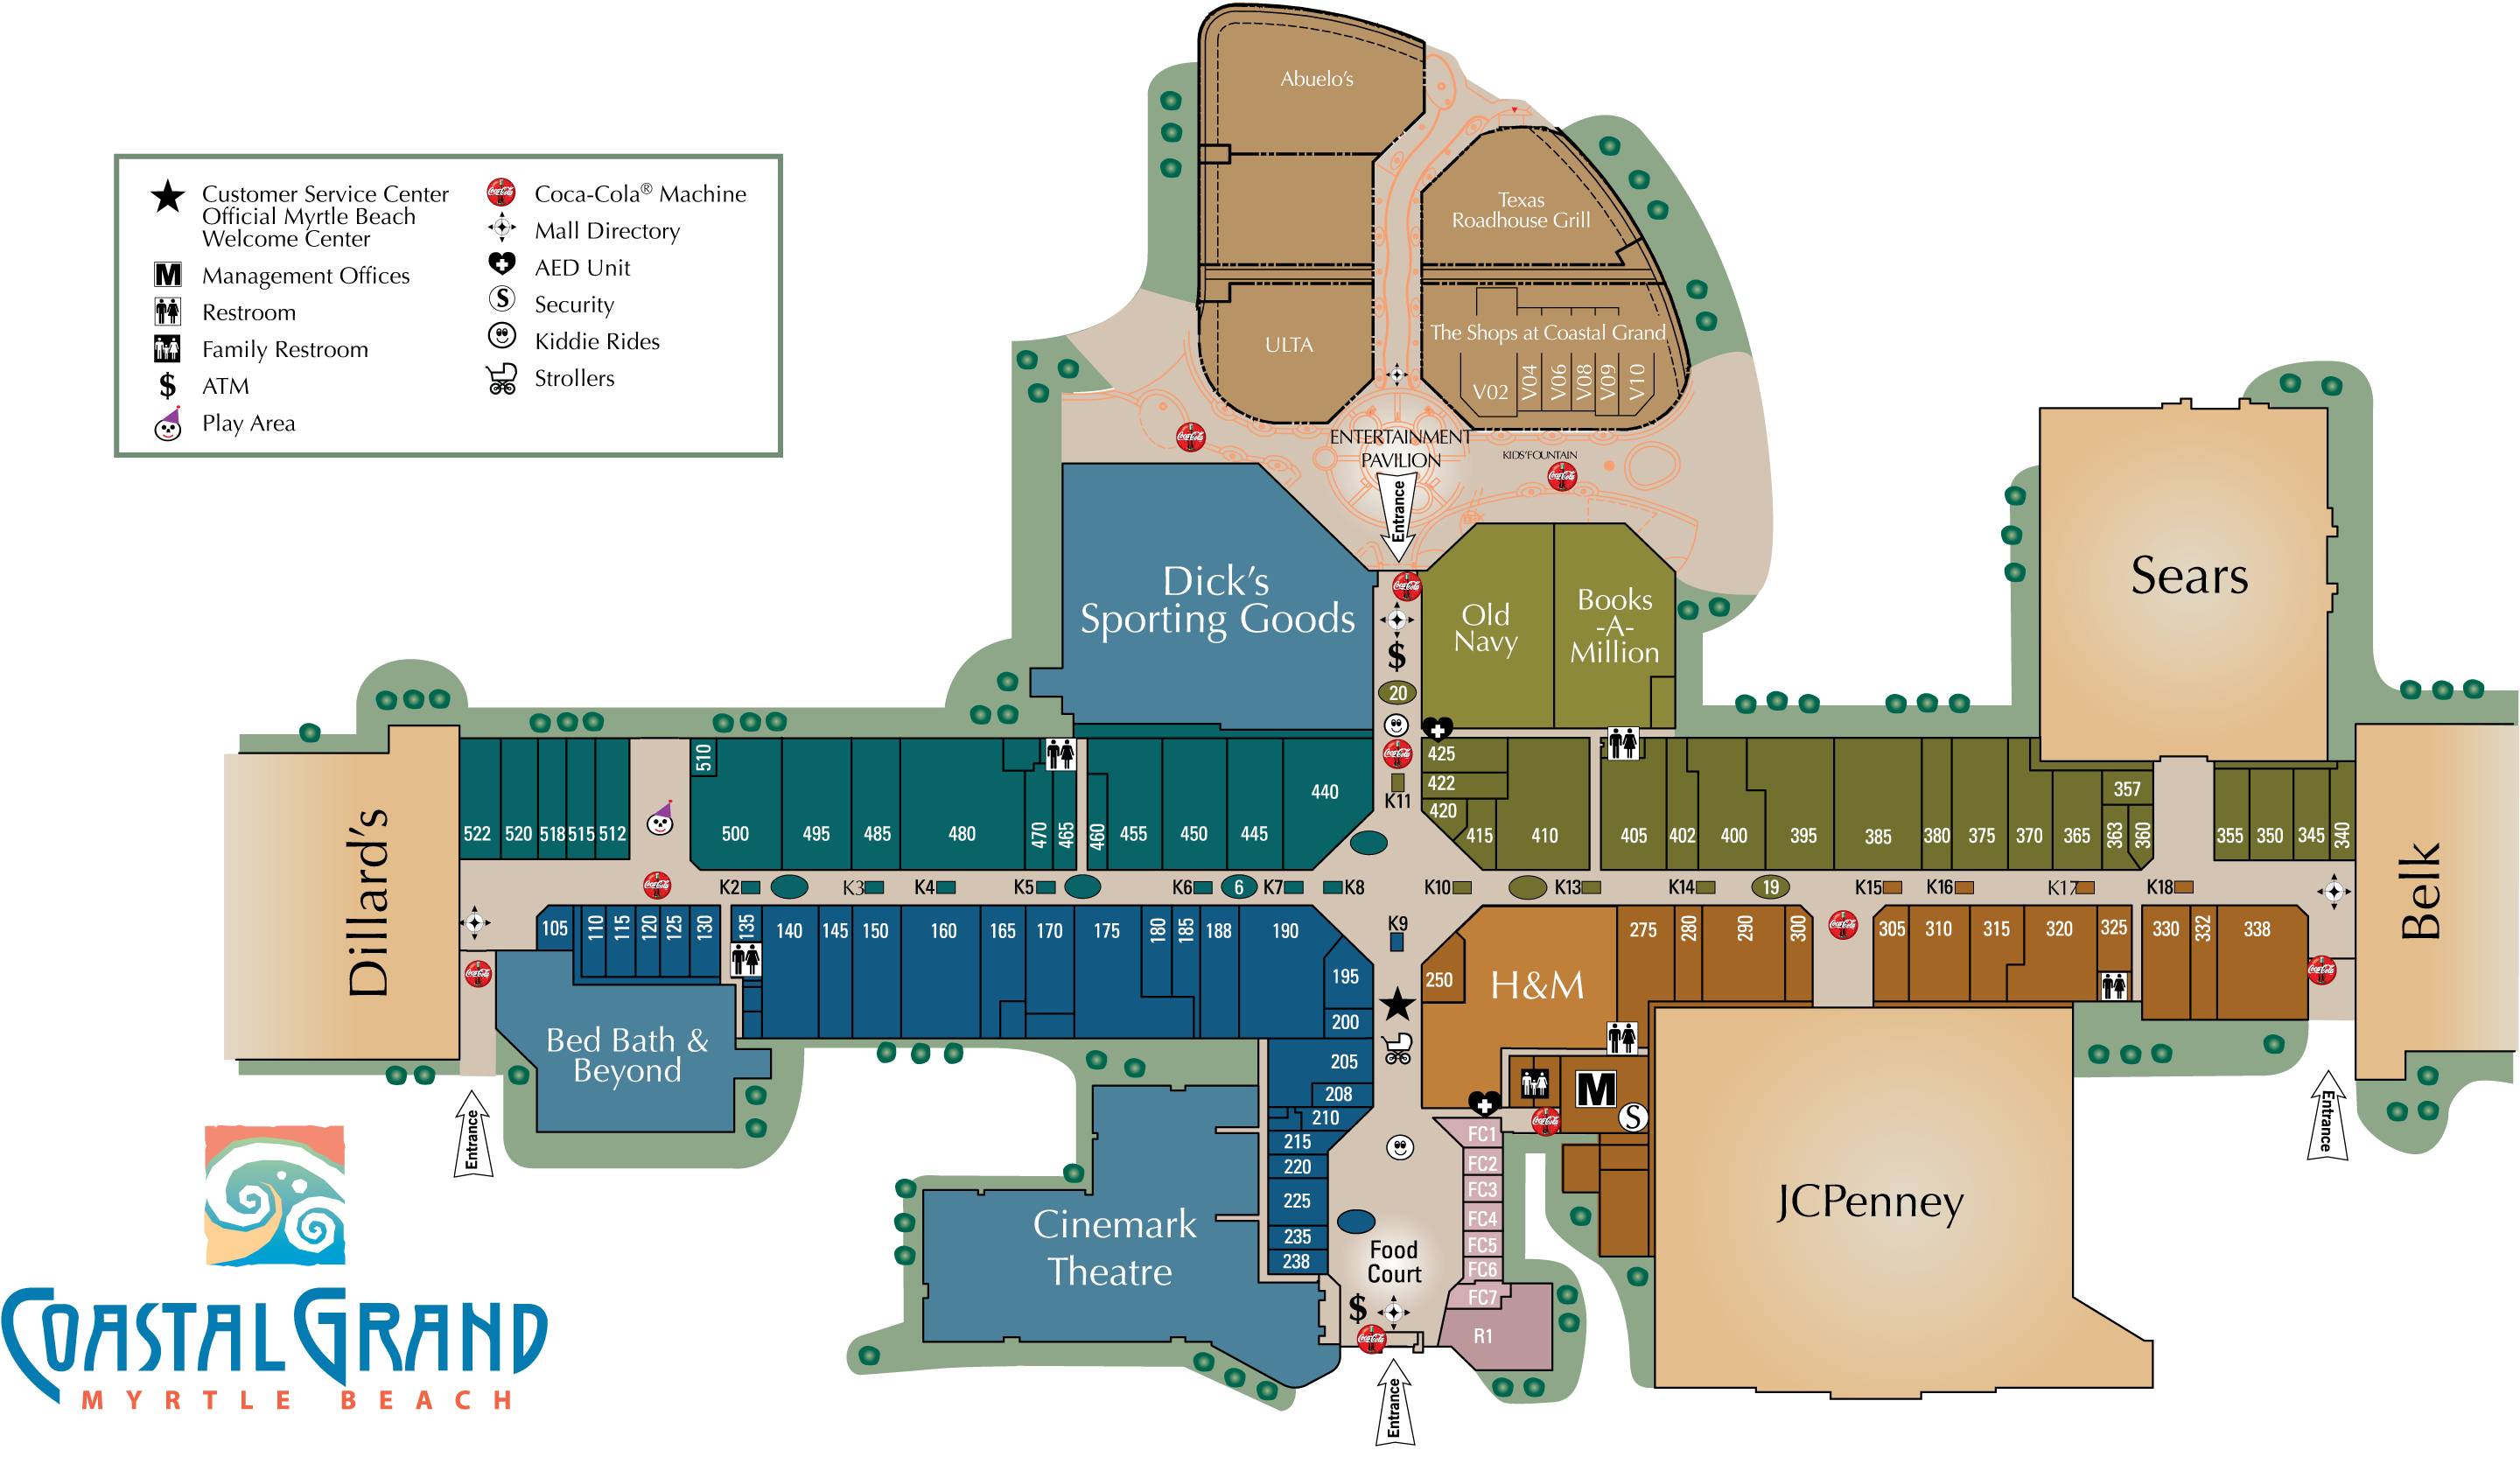 Coastal Grand Mall directory map